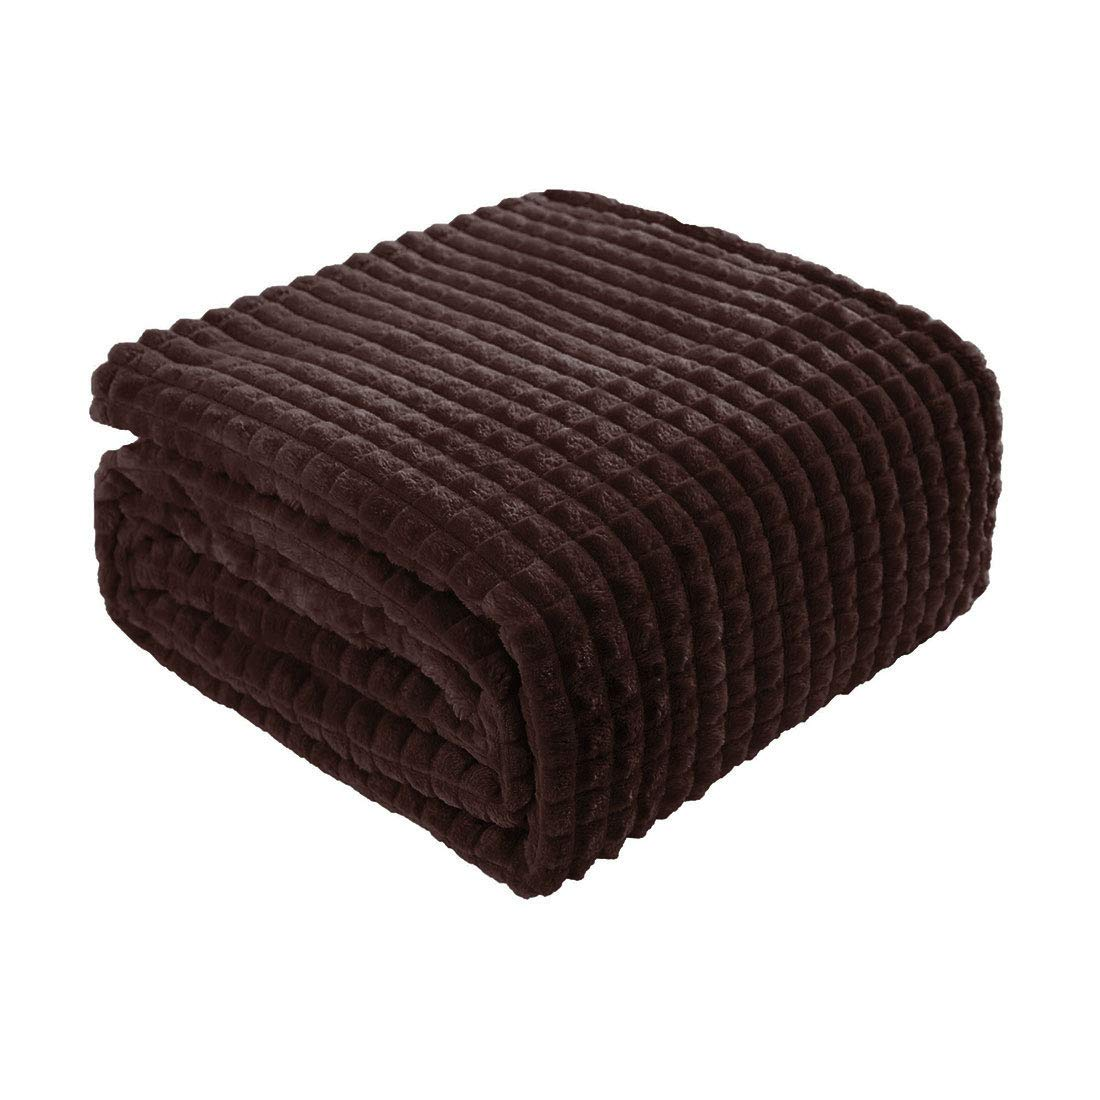 """uxcell Solid Flannel Fleece Throw Blanket,Lightweight Soft Decorative Blanket with Grid Pattern,Luxury Microfiber Plush Blanket for Sofa Couch, 50""""x 60"""", Coffee Color"""